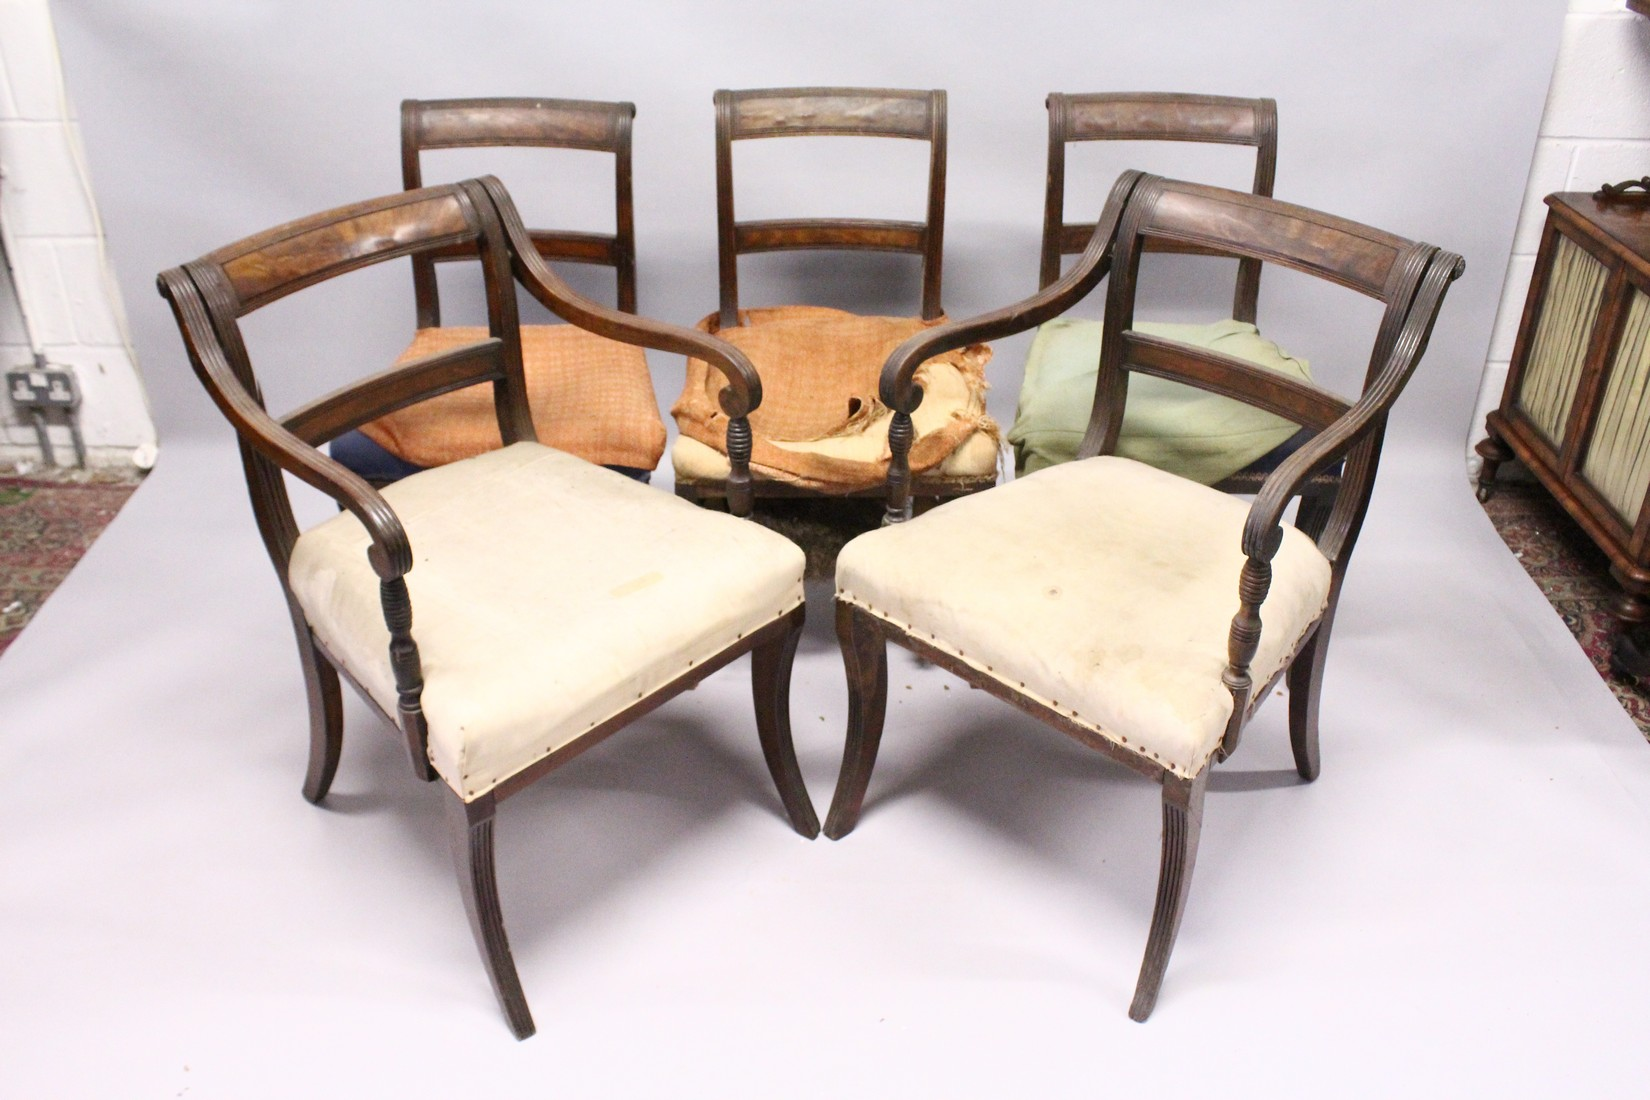 A PAIR OF MAHOGANY, SABRE LEG ARM CHAIRS and three matching single chairs. - Image 2 of 5